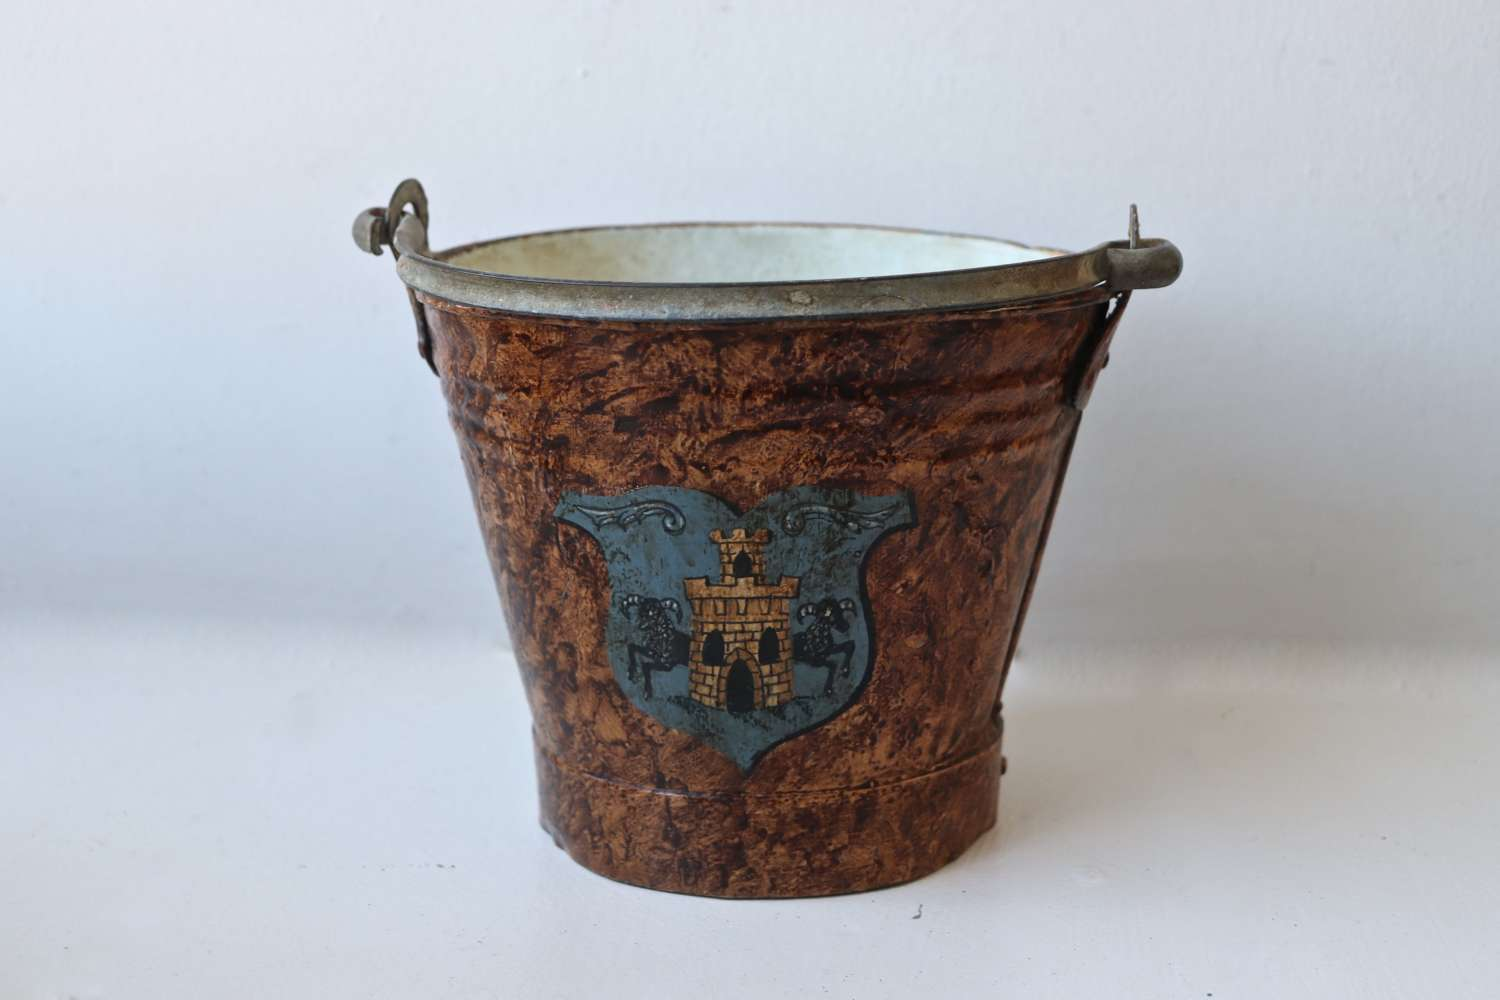 Late 19th century toleware bucket with crest